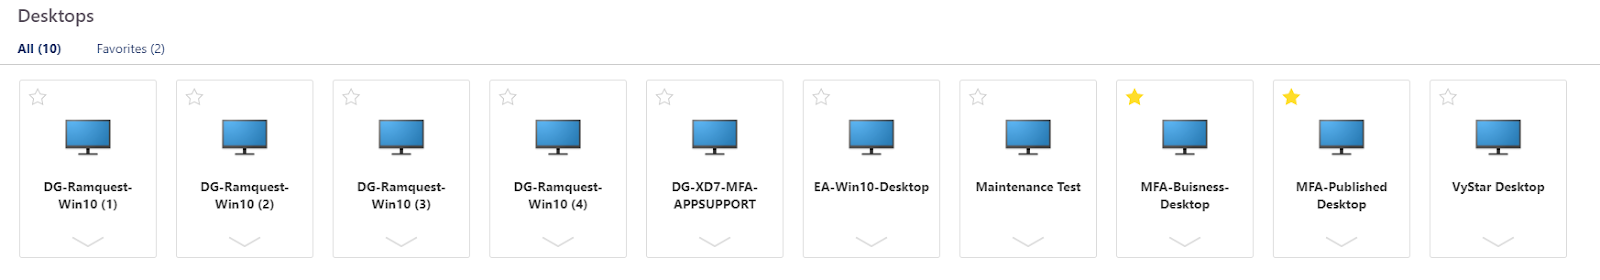 Machine generated alternative text: Desktops  All (10)  Favorites (2)  DG -Ramquest-  Win10 (1)  DG-Ramquest-  Win10 (2)  DG-Ramquest-  Win10 (3)  DG -Ramquest-  Win10 (4)  DG.XD7.MFA.  APPSUPPORT  EA-Win10.Desktop  Maintenance Test  MFA-Buisness-  Desktop  MFA-Published  Desktop  VyStar Desktop